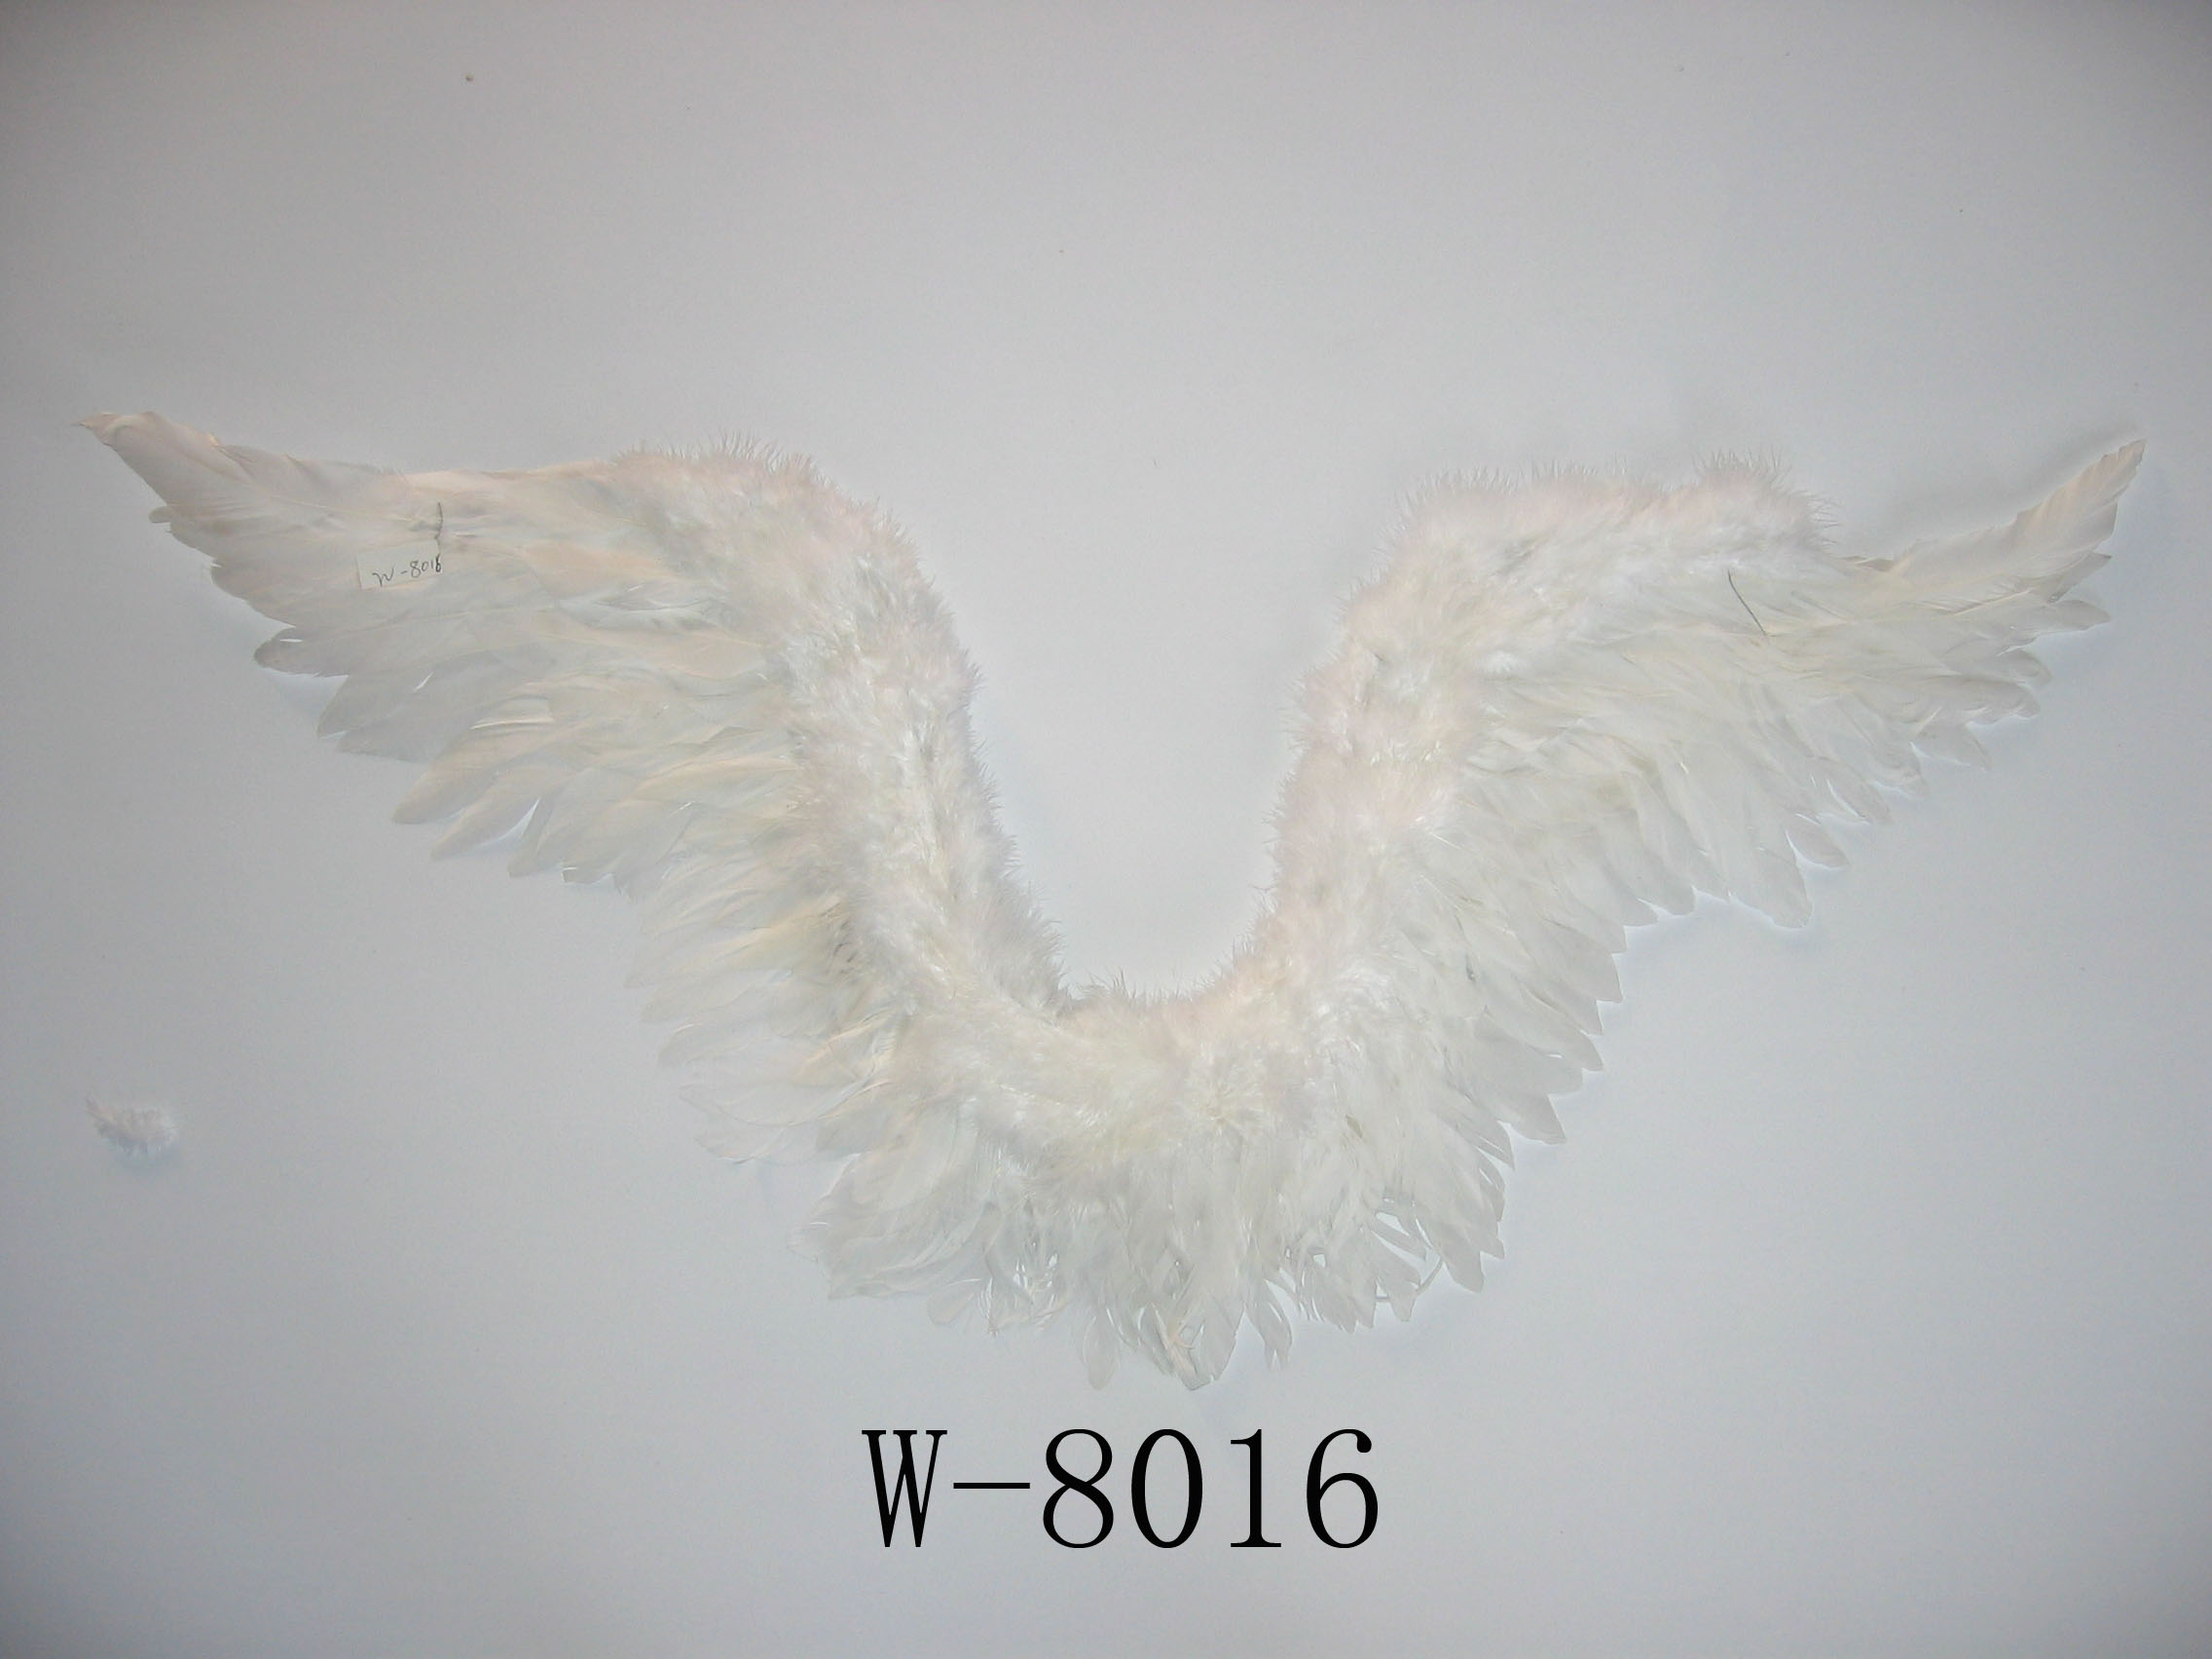 feather angel wings for sale - China supplier W-8016